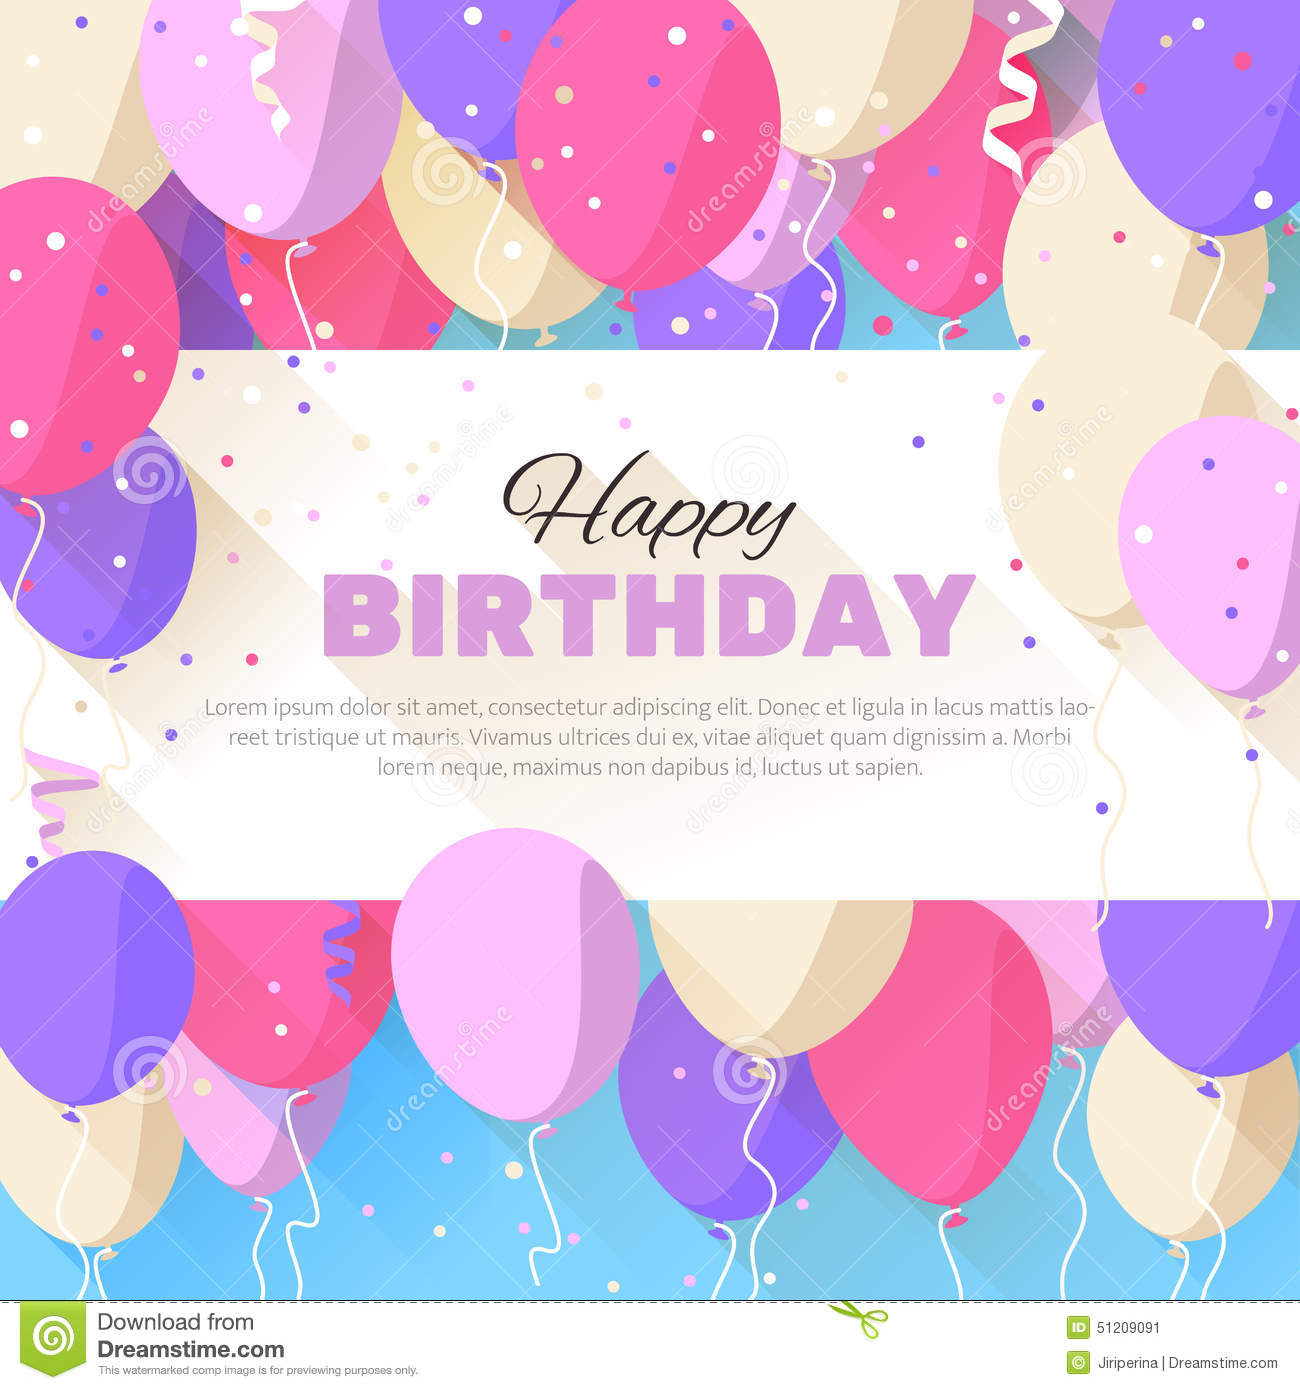 birthday wishes posters free ; happy-birthday-greeting-card-flat-style-announcement-poster-flyer-vector-illustration-51209091